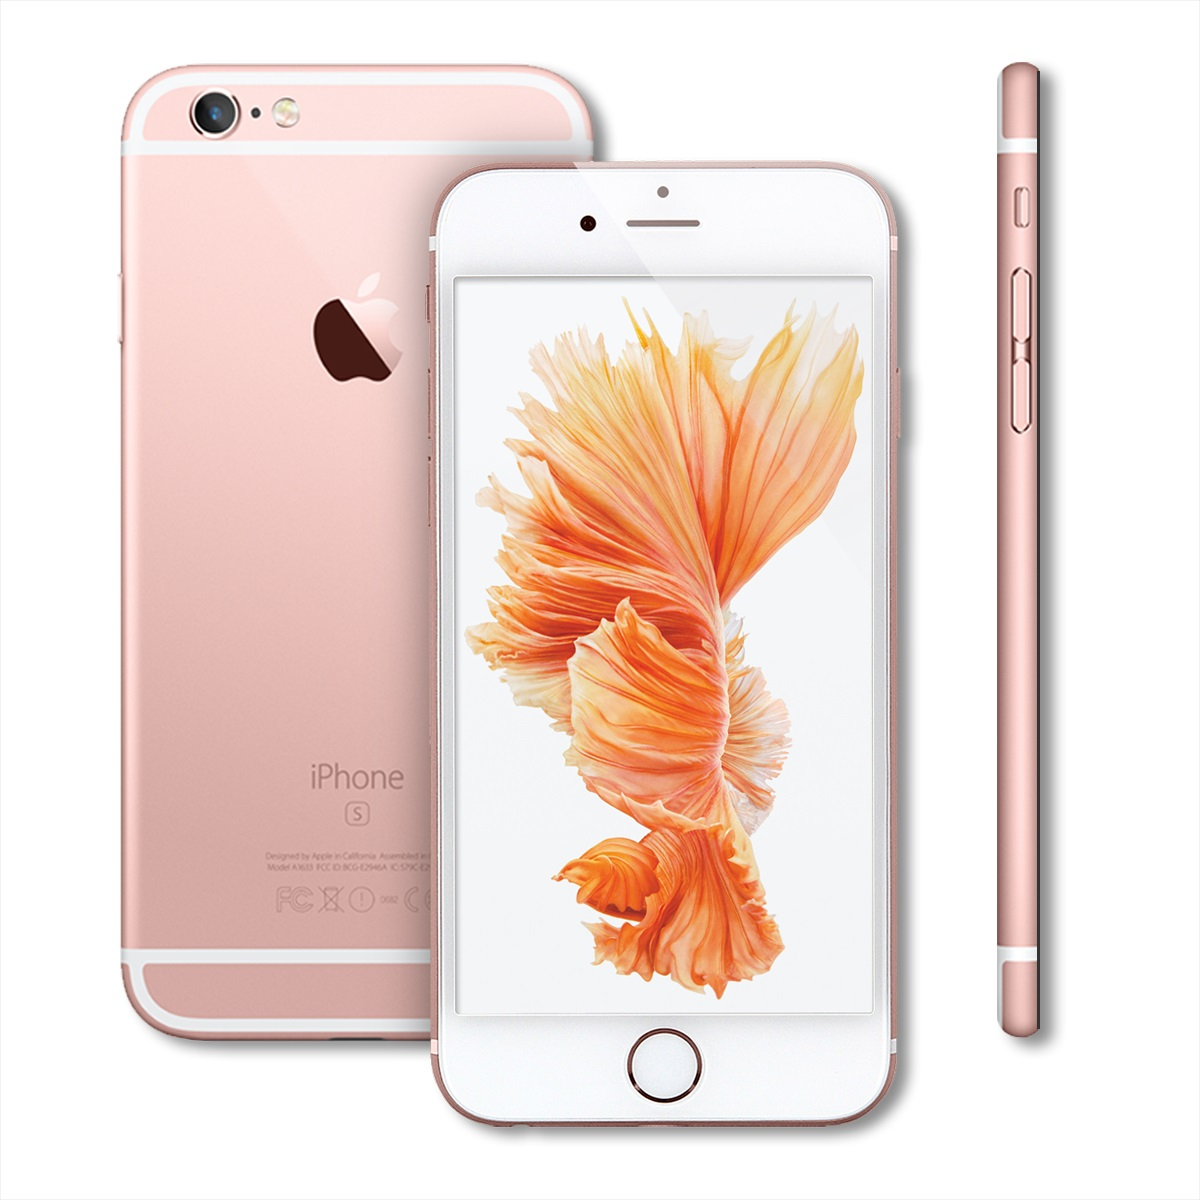 apple iphone 6s smartphone 16gb unlocked cell phone a1688 silver rose gold ebay. Black Bedroom Furniture Sets. Home Design Ideas